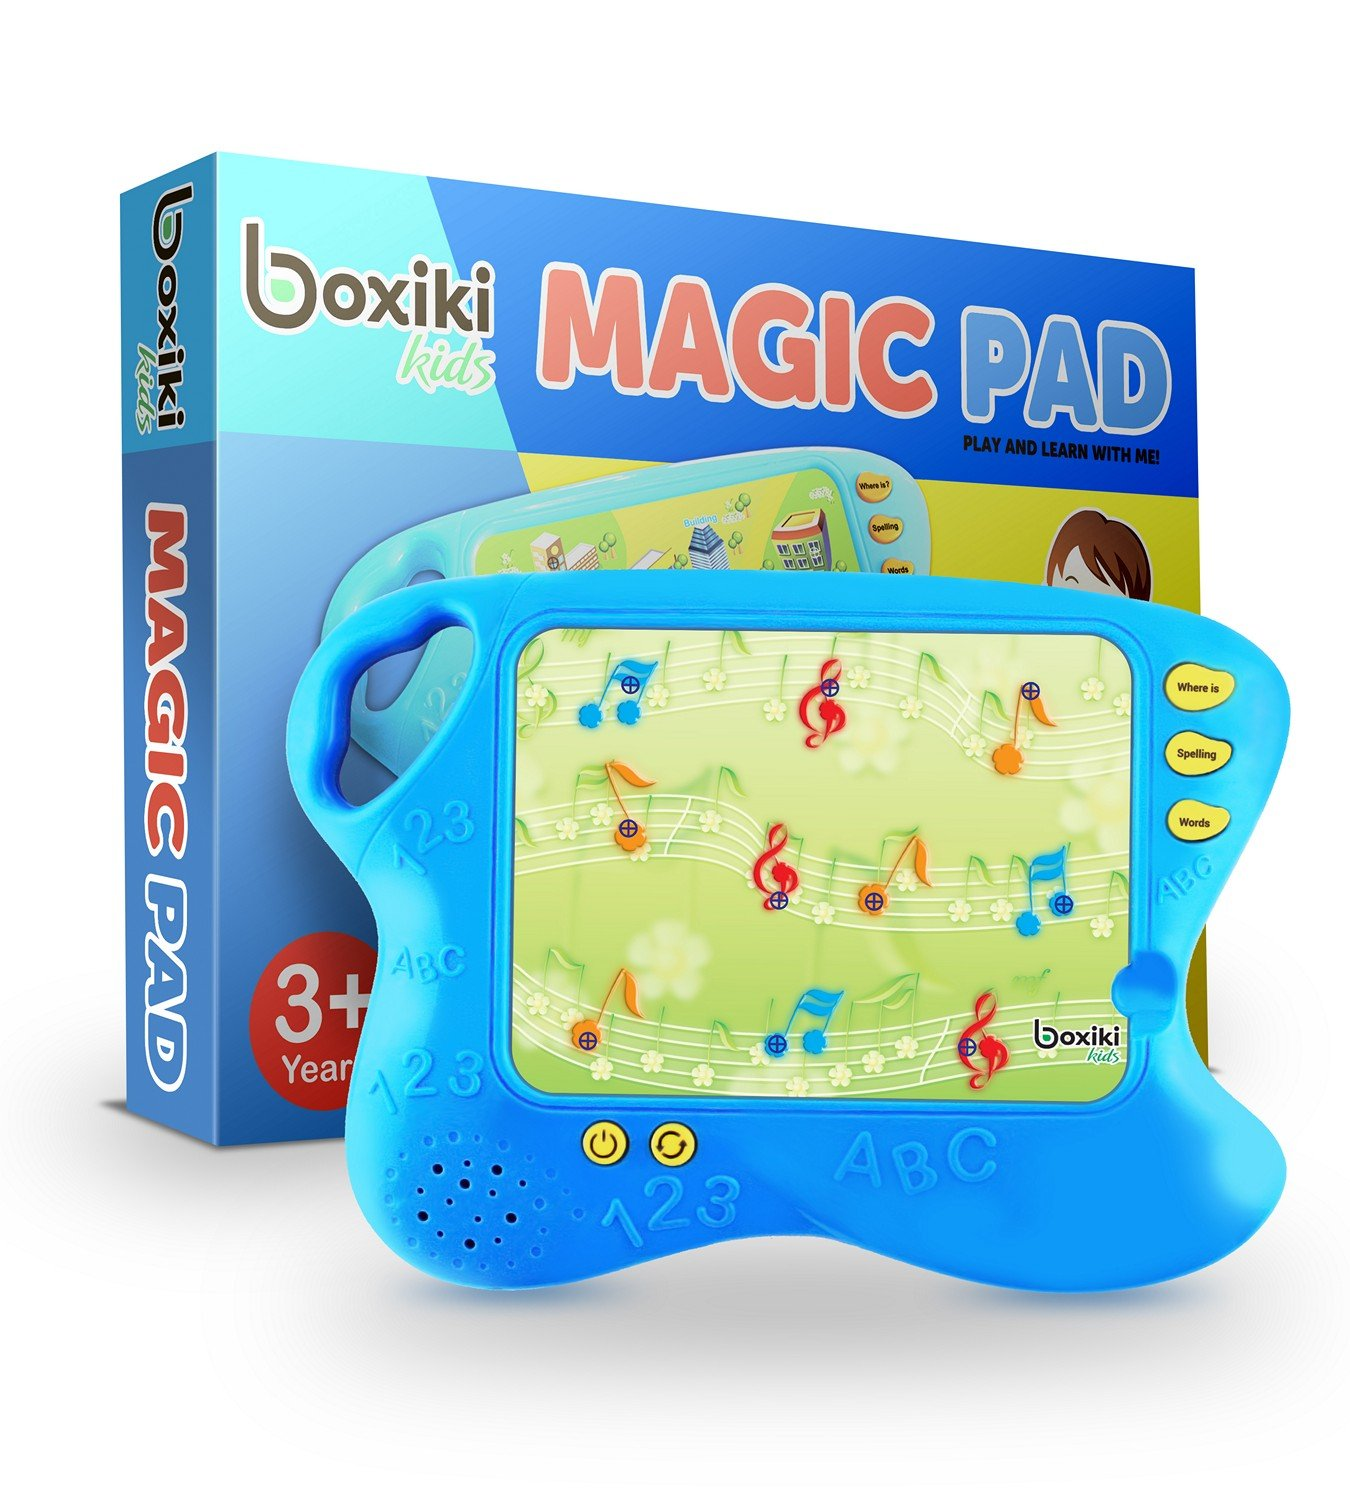 Boxiki kids Toddler Tablet and Learning Pad with 10 Educational Cards | Kids Smart Pad and Board Game w/ Touch and Learn Functions | Learn Animals, Colors, Words, Spelling and More